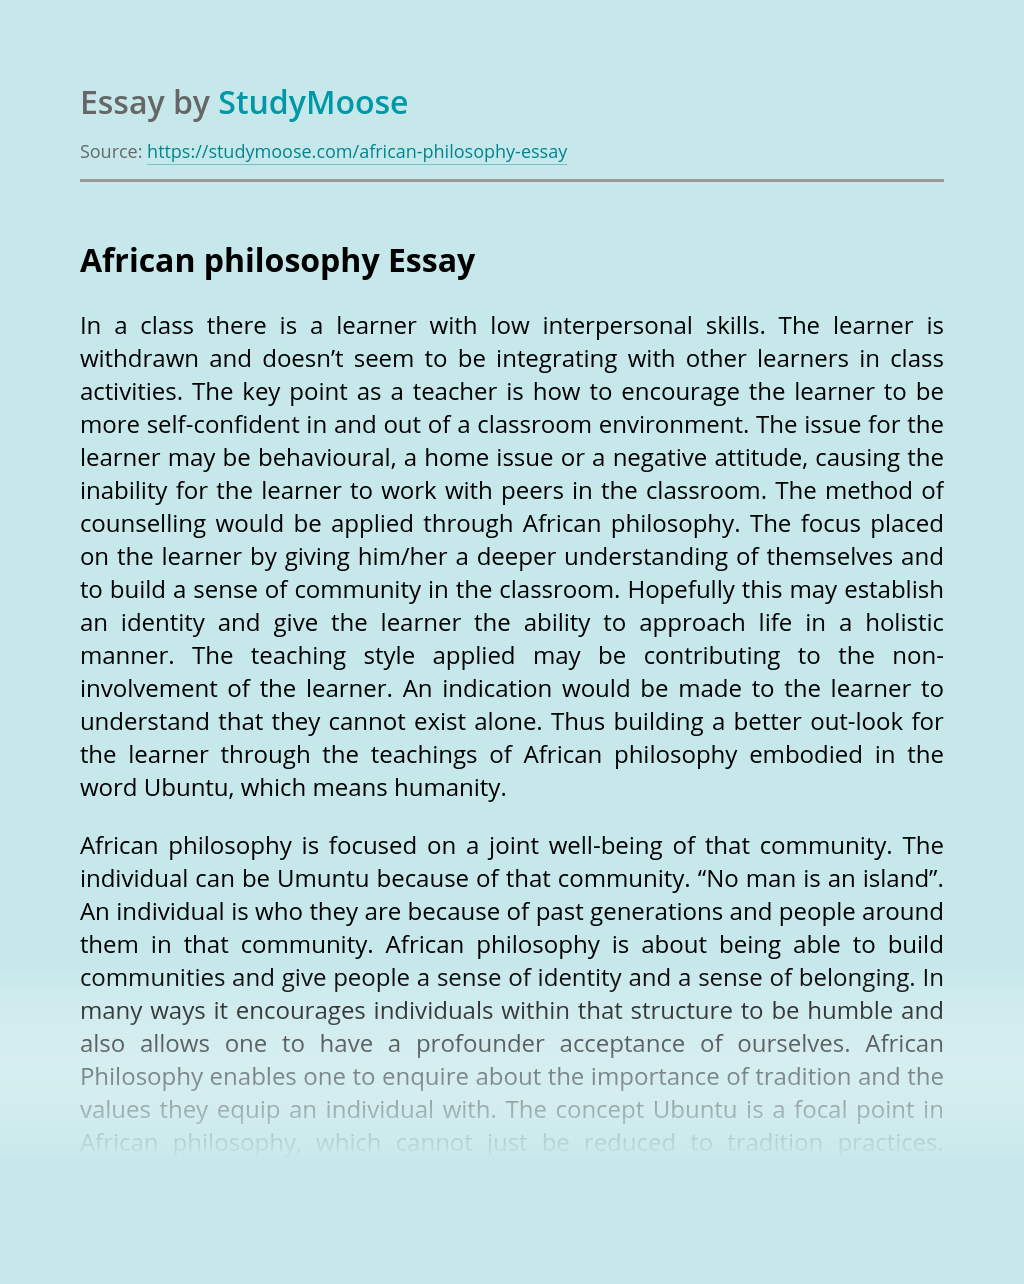 The meaning of Ubuntu in African philosophy